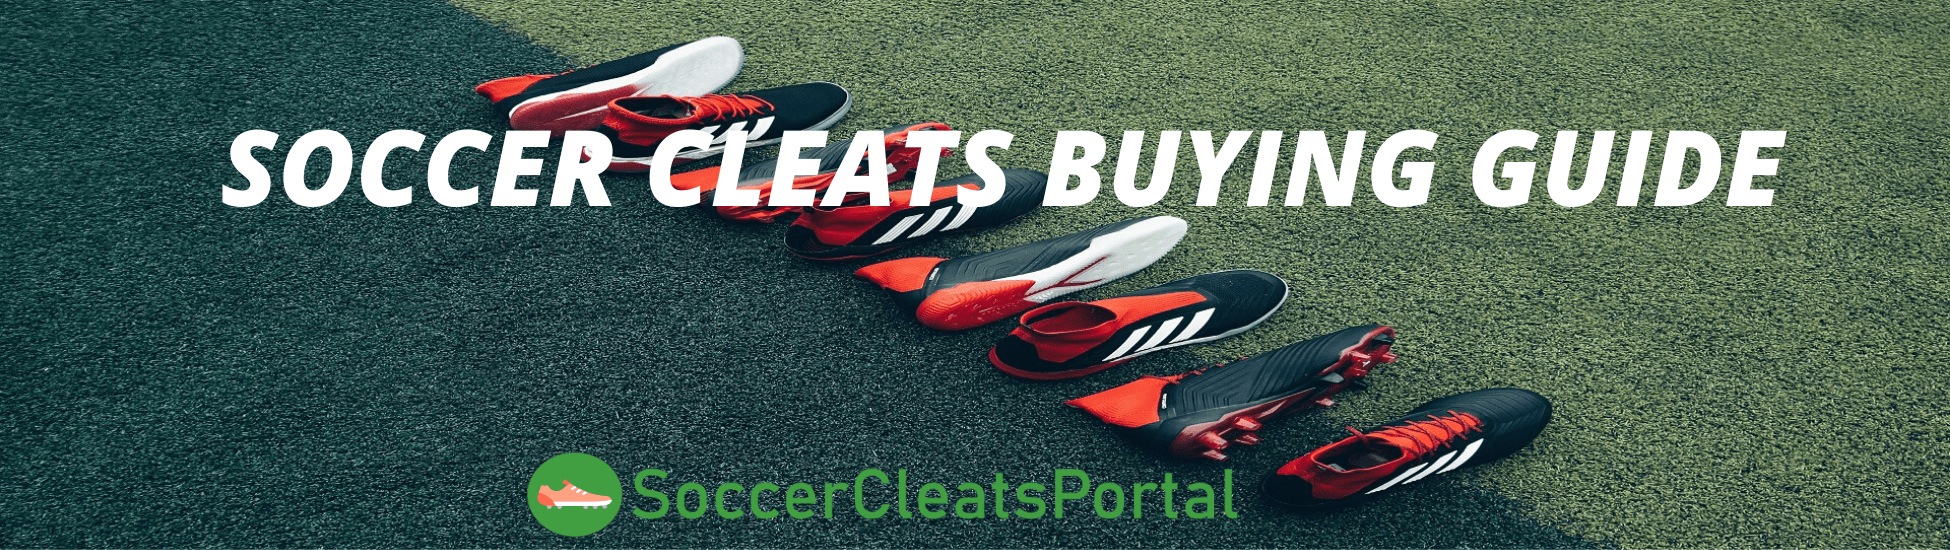 SOCCER CLEATS BUYING GUIDE FEATURED IMAGE